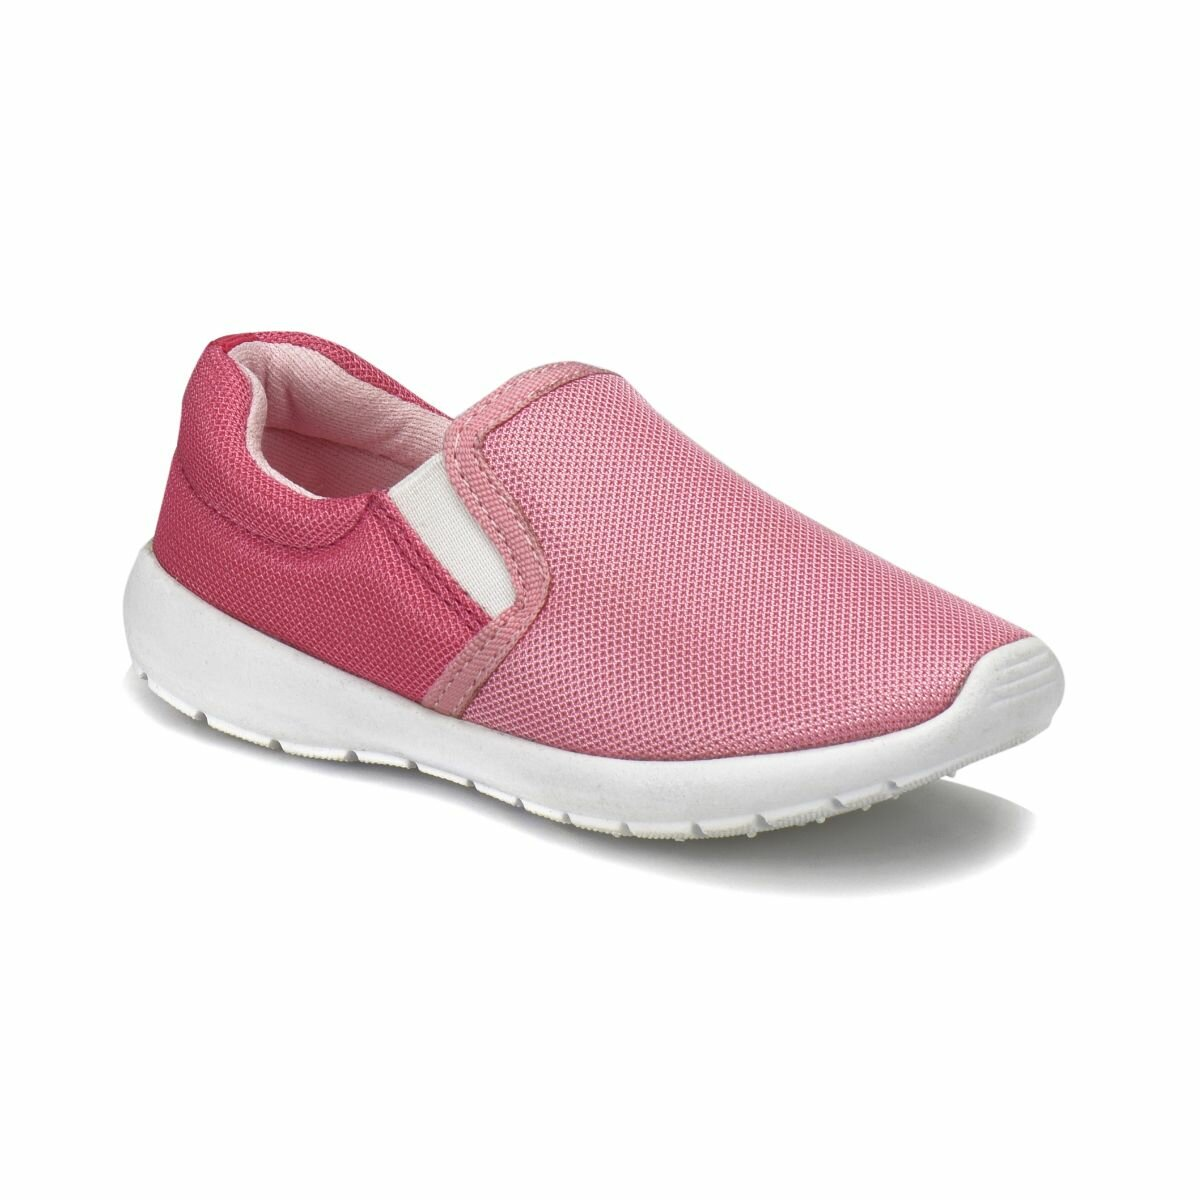 FLO Tory Pink Female Child Walking Shoes I-Cool